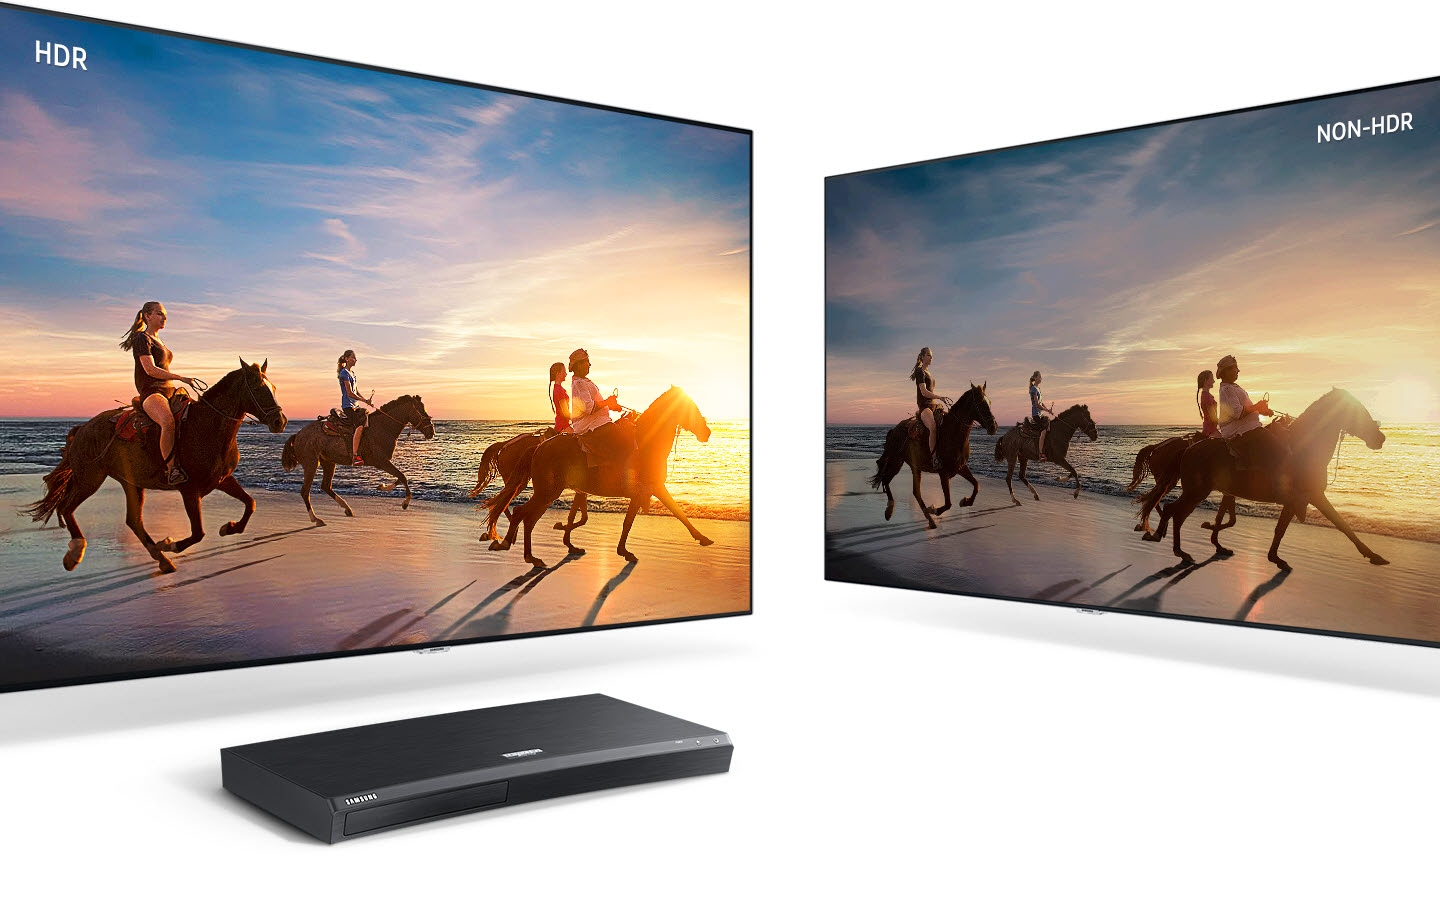 Samsung Ultra HD Blu-ray Player HDR Technology